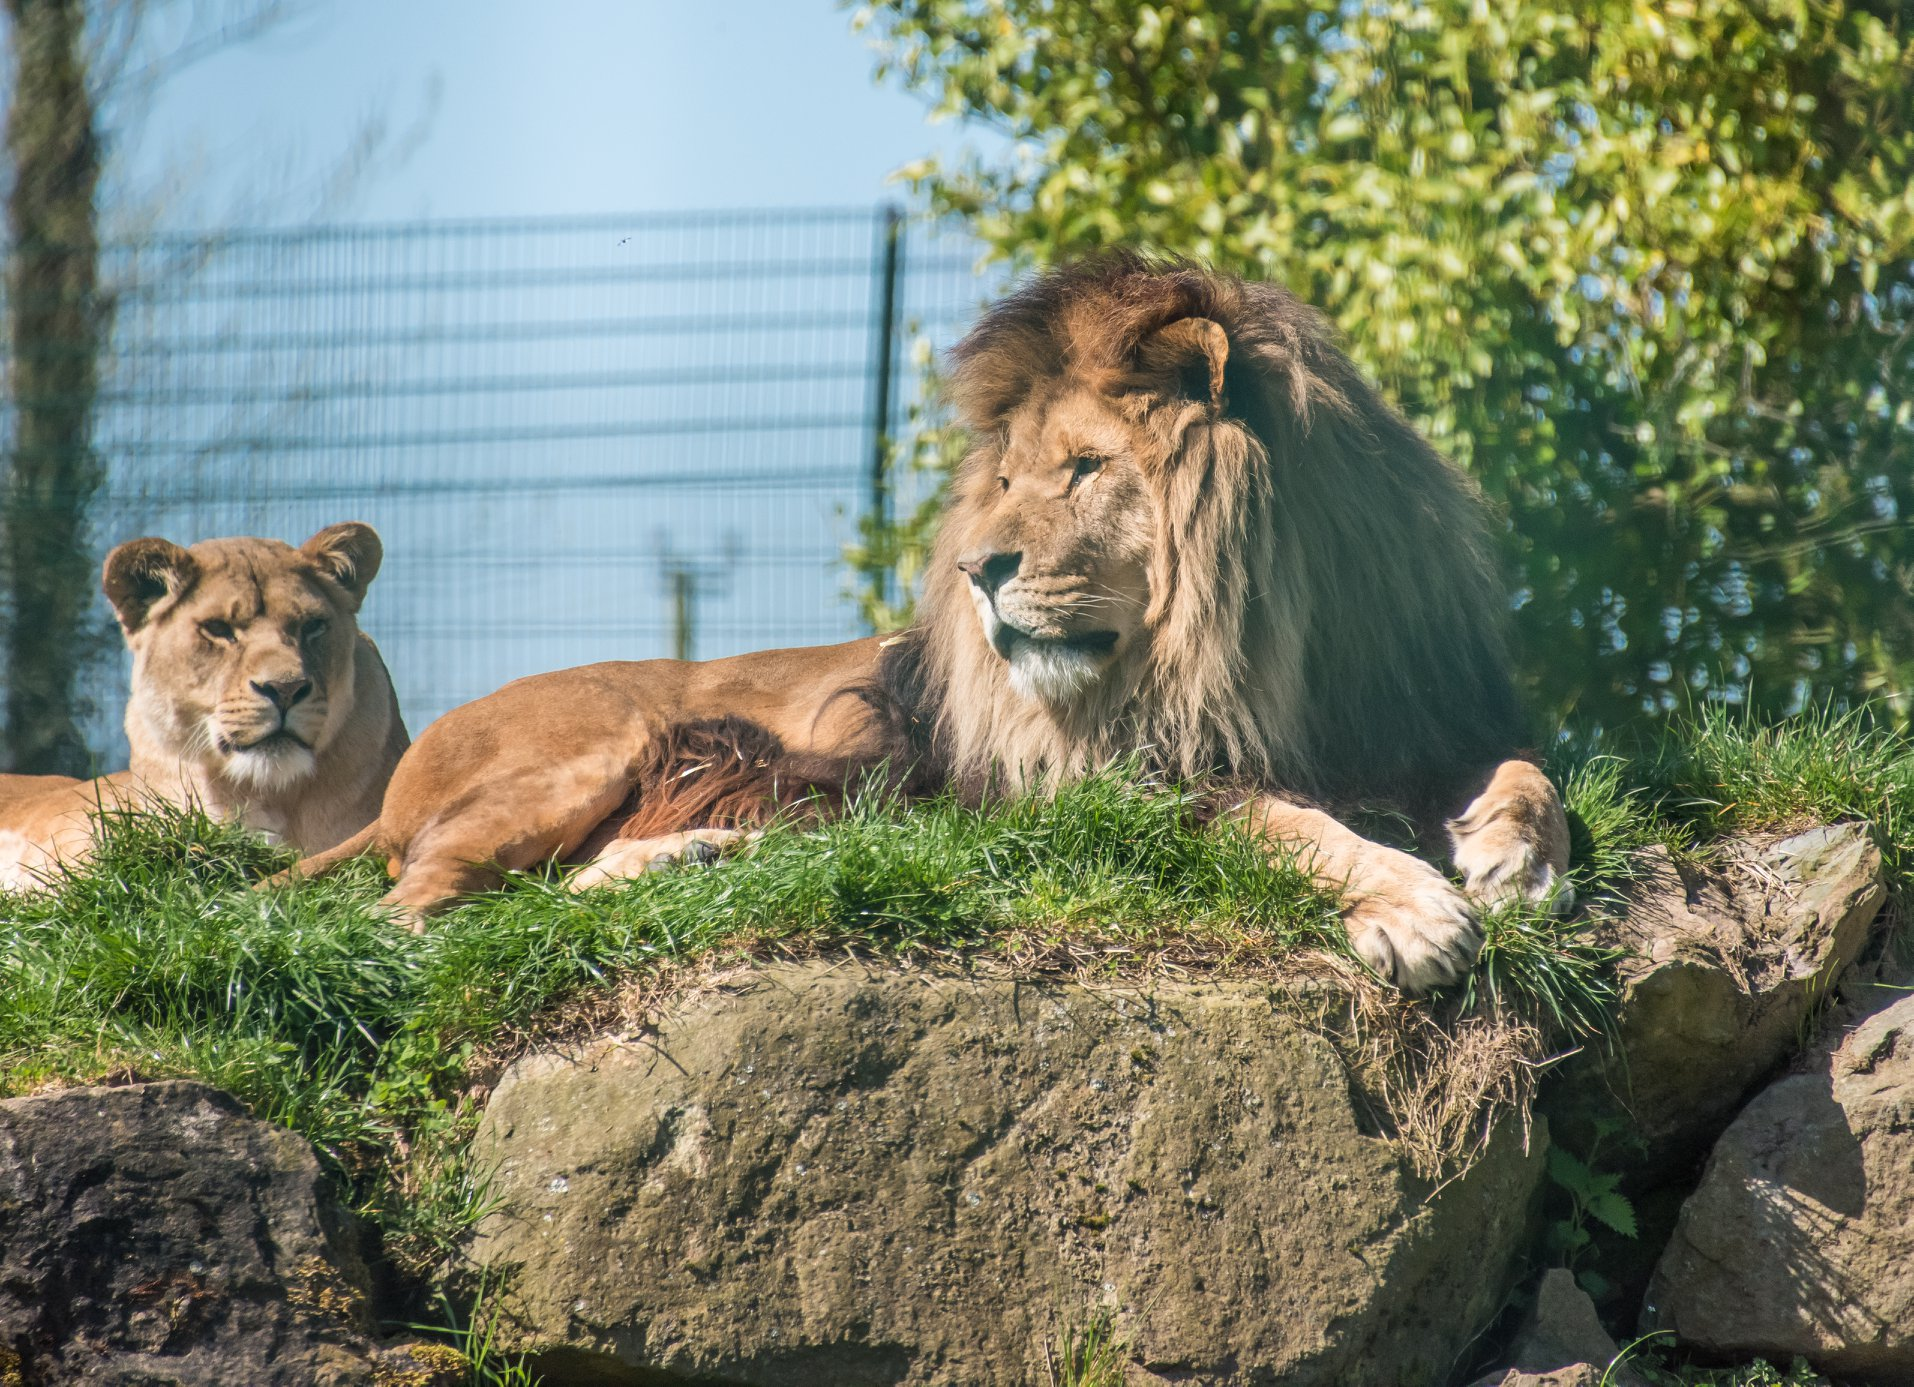 Today's Western Telegraph Camera Club Picture of the Day was taken of Hugo the lion at Folly Farm enjoying the sunshine